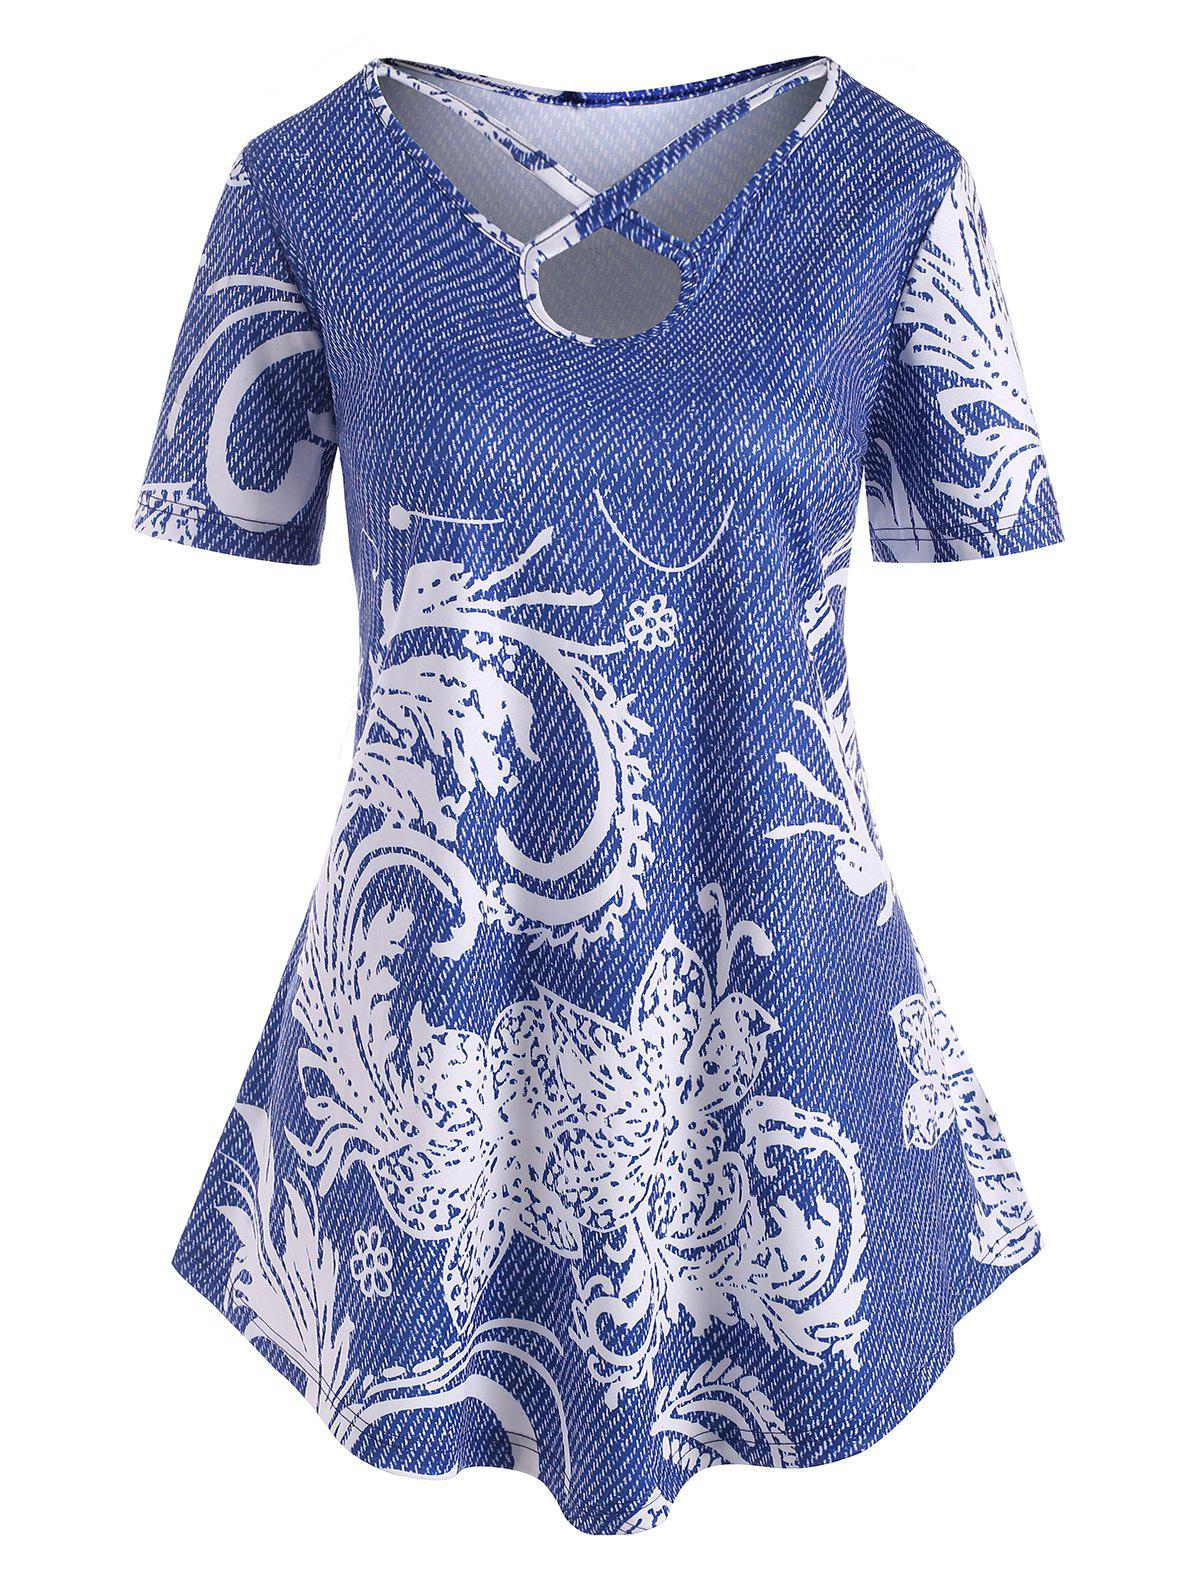 Plus Size Keyhole Criss Cross Printed Tunic Tee - BLUE 5X